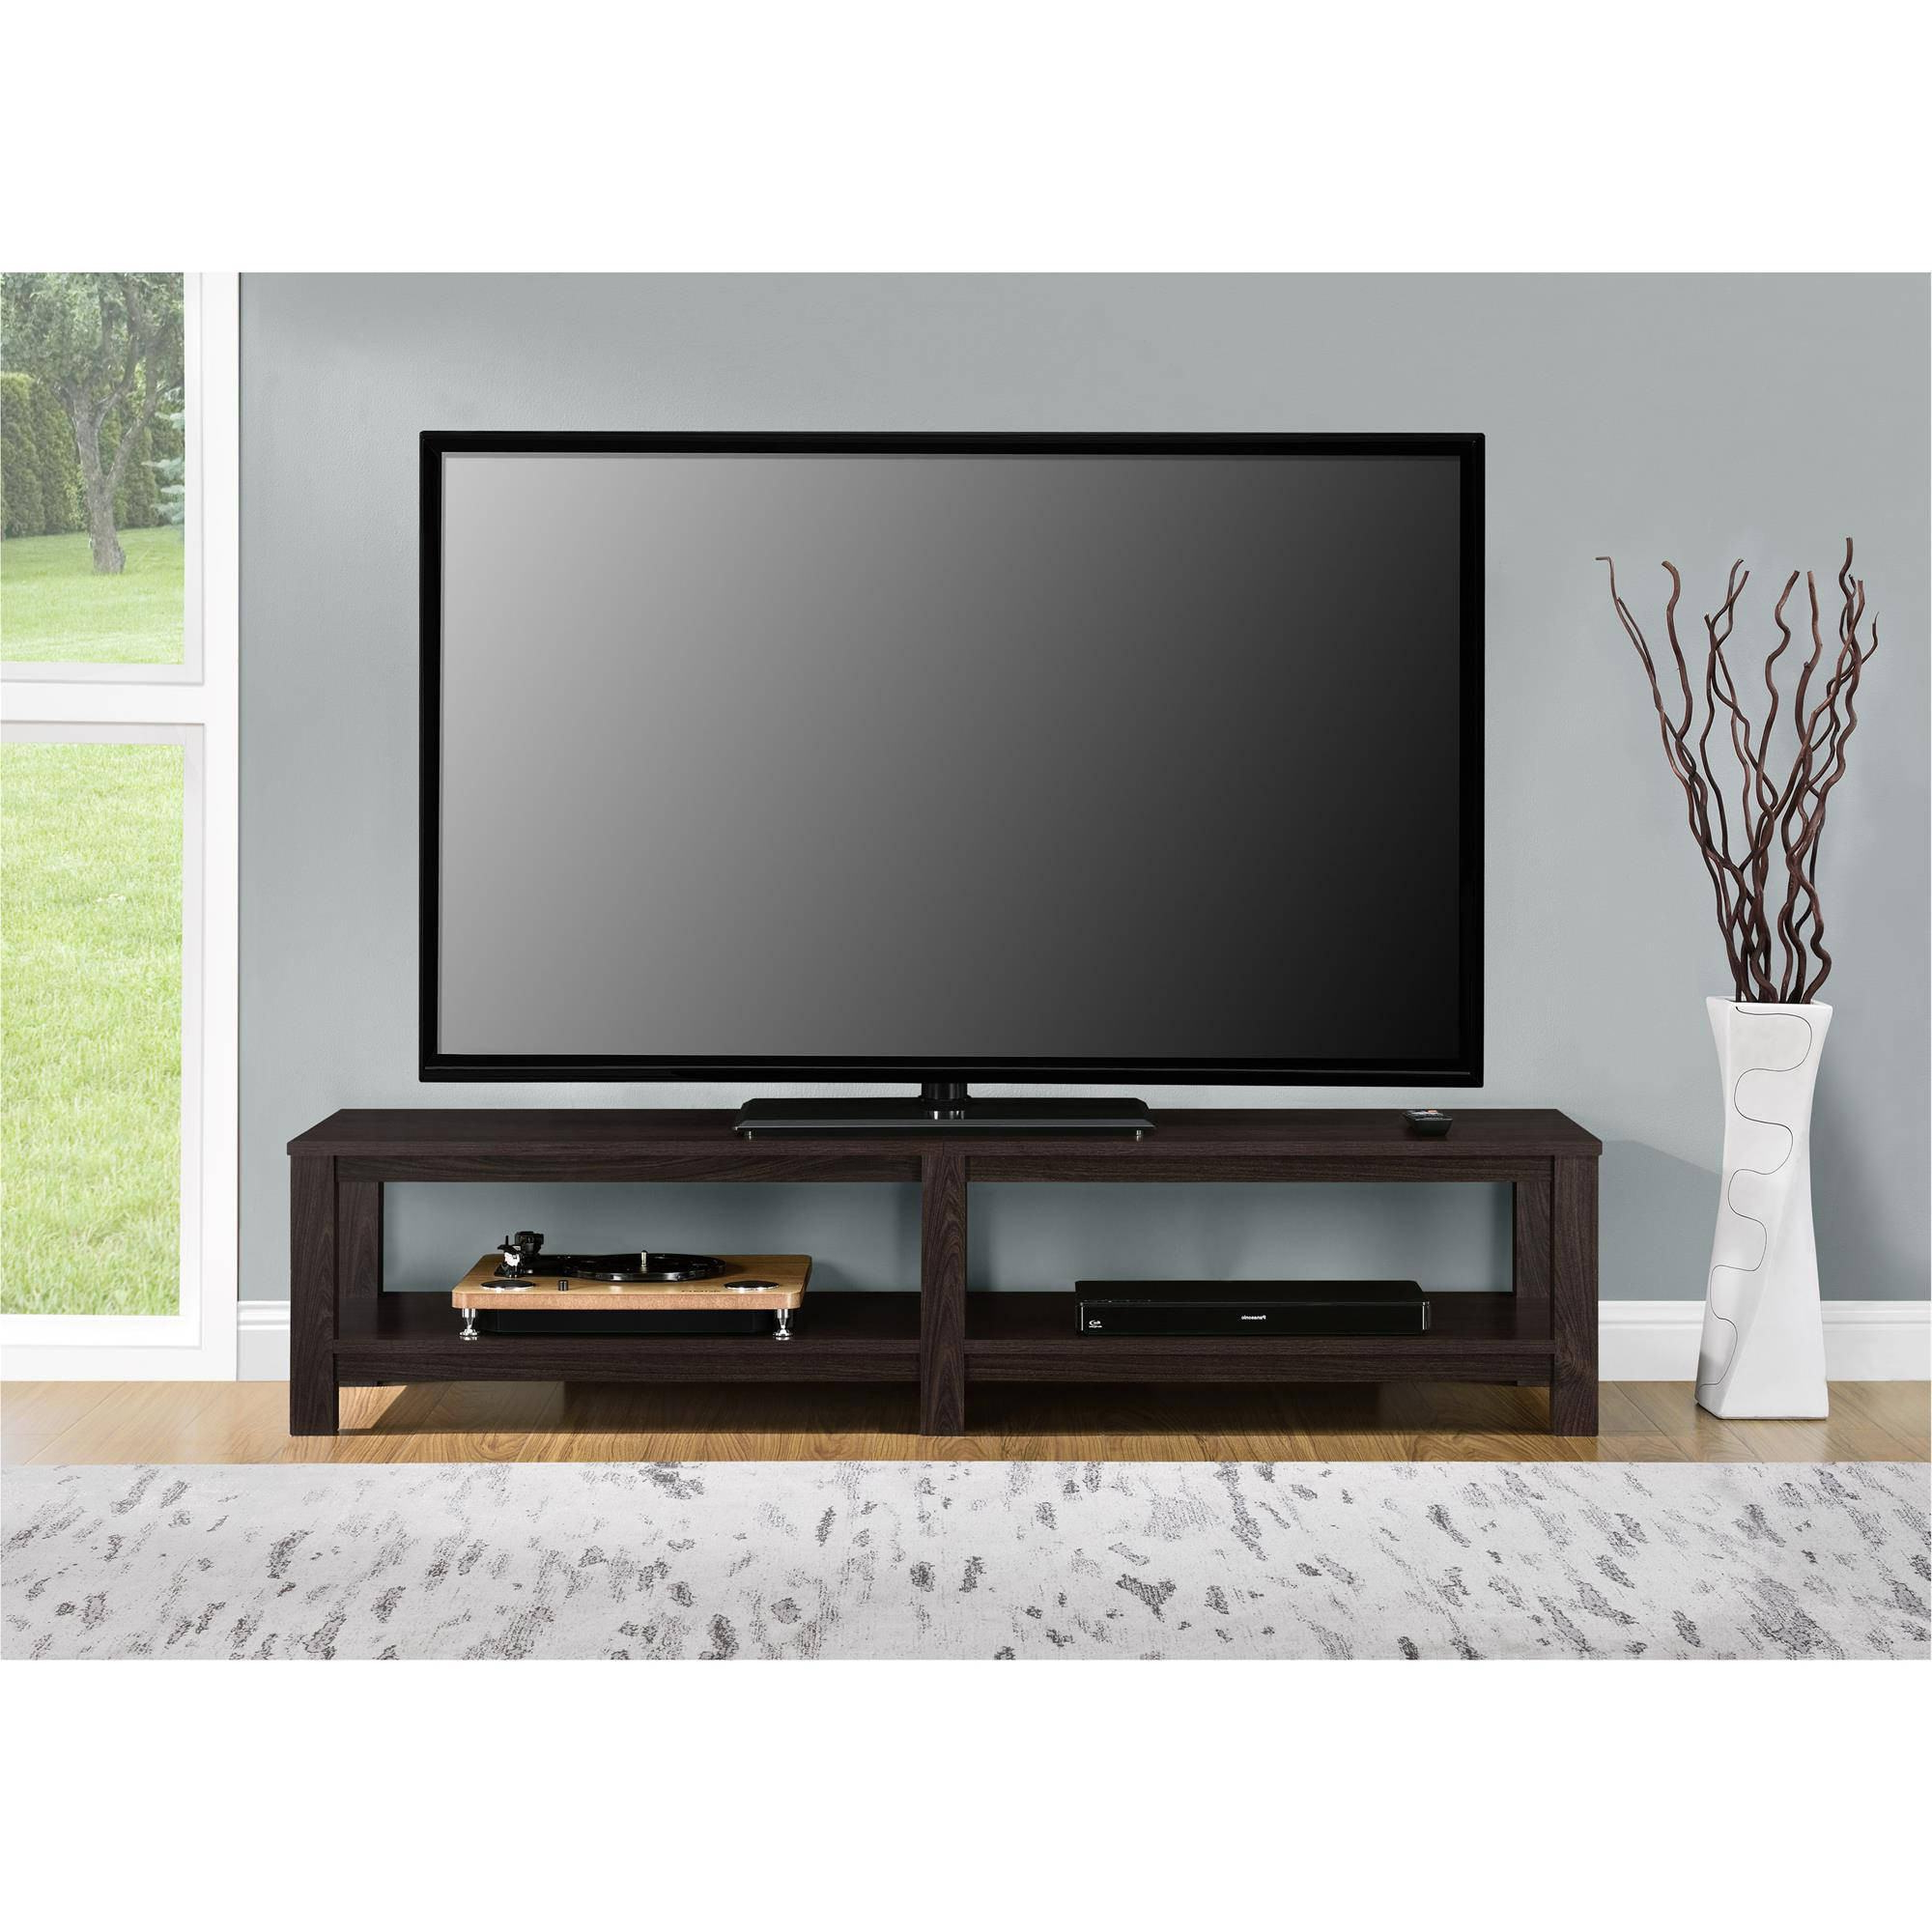 Jaxon 65 Inch Tv Stands In 2018 13 Stunning 65 Inch Tv Stand For Your New Living Room (Gallery 16 of 20)